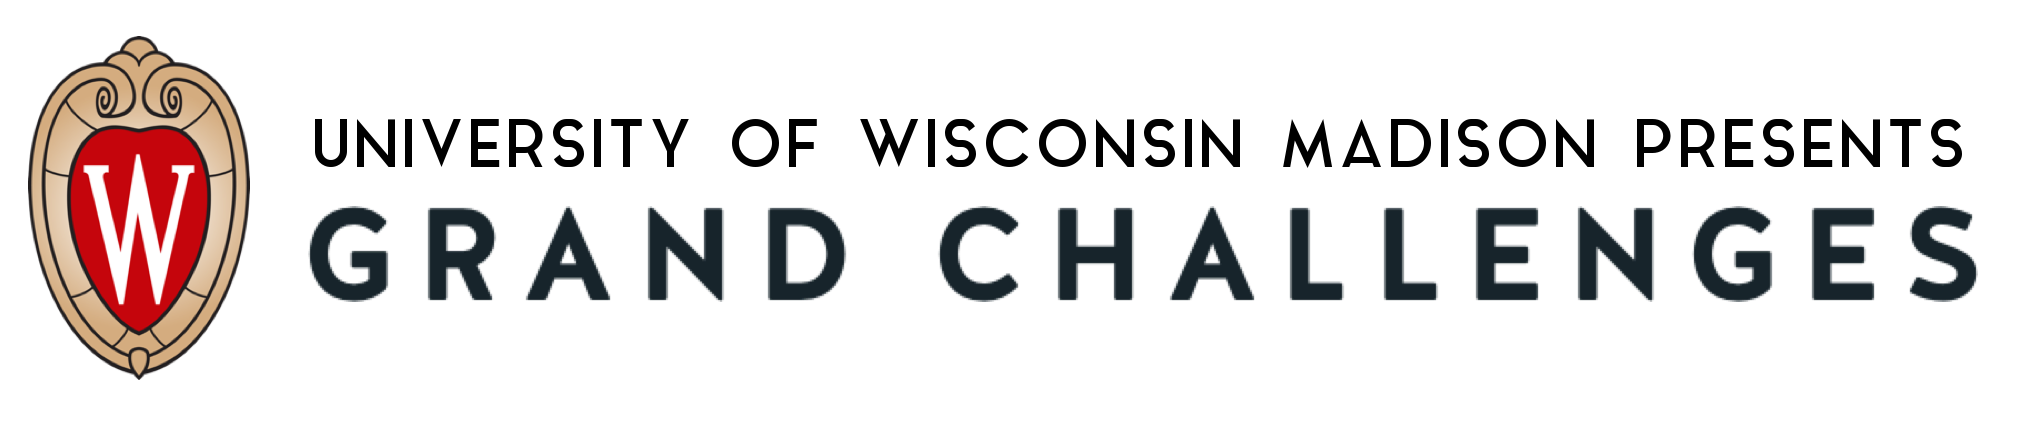 University of Wisconsin presents: Grand Challenges